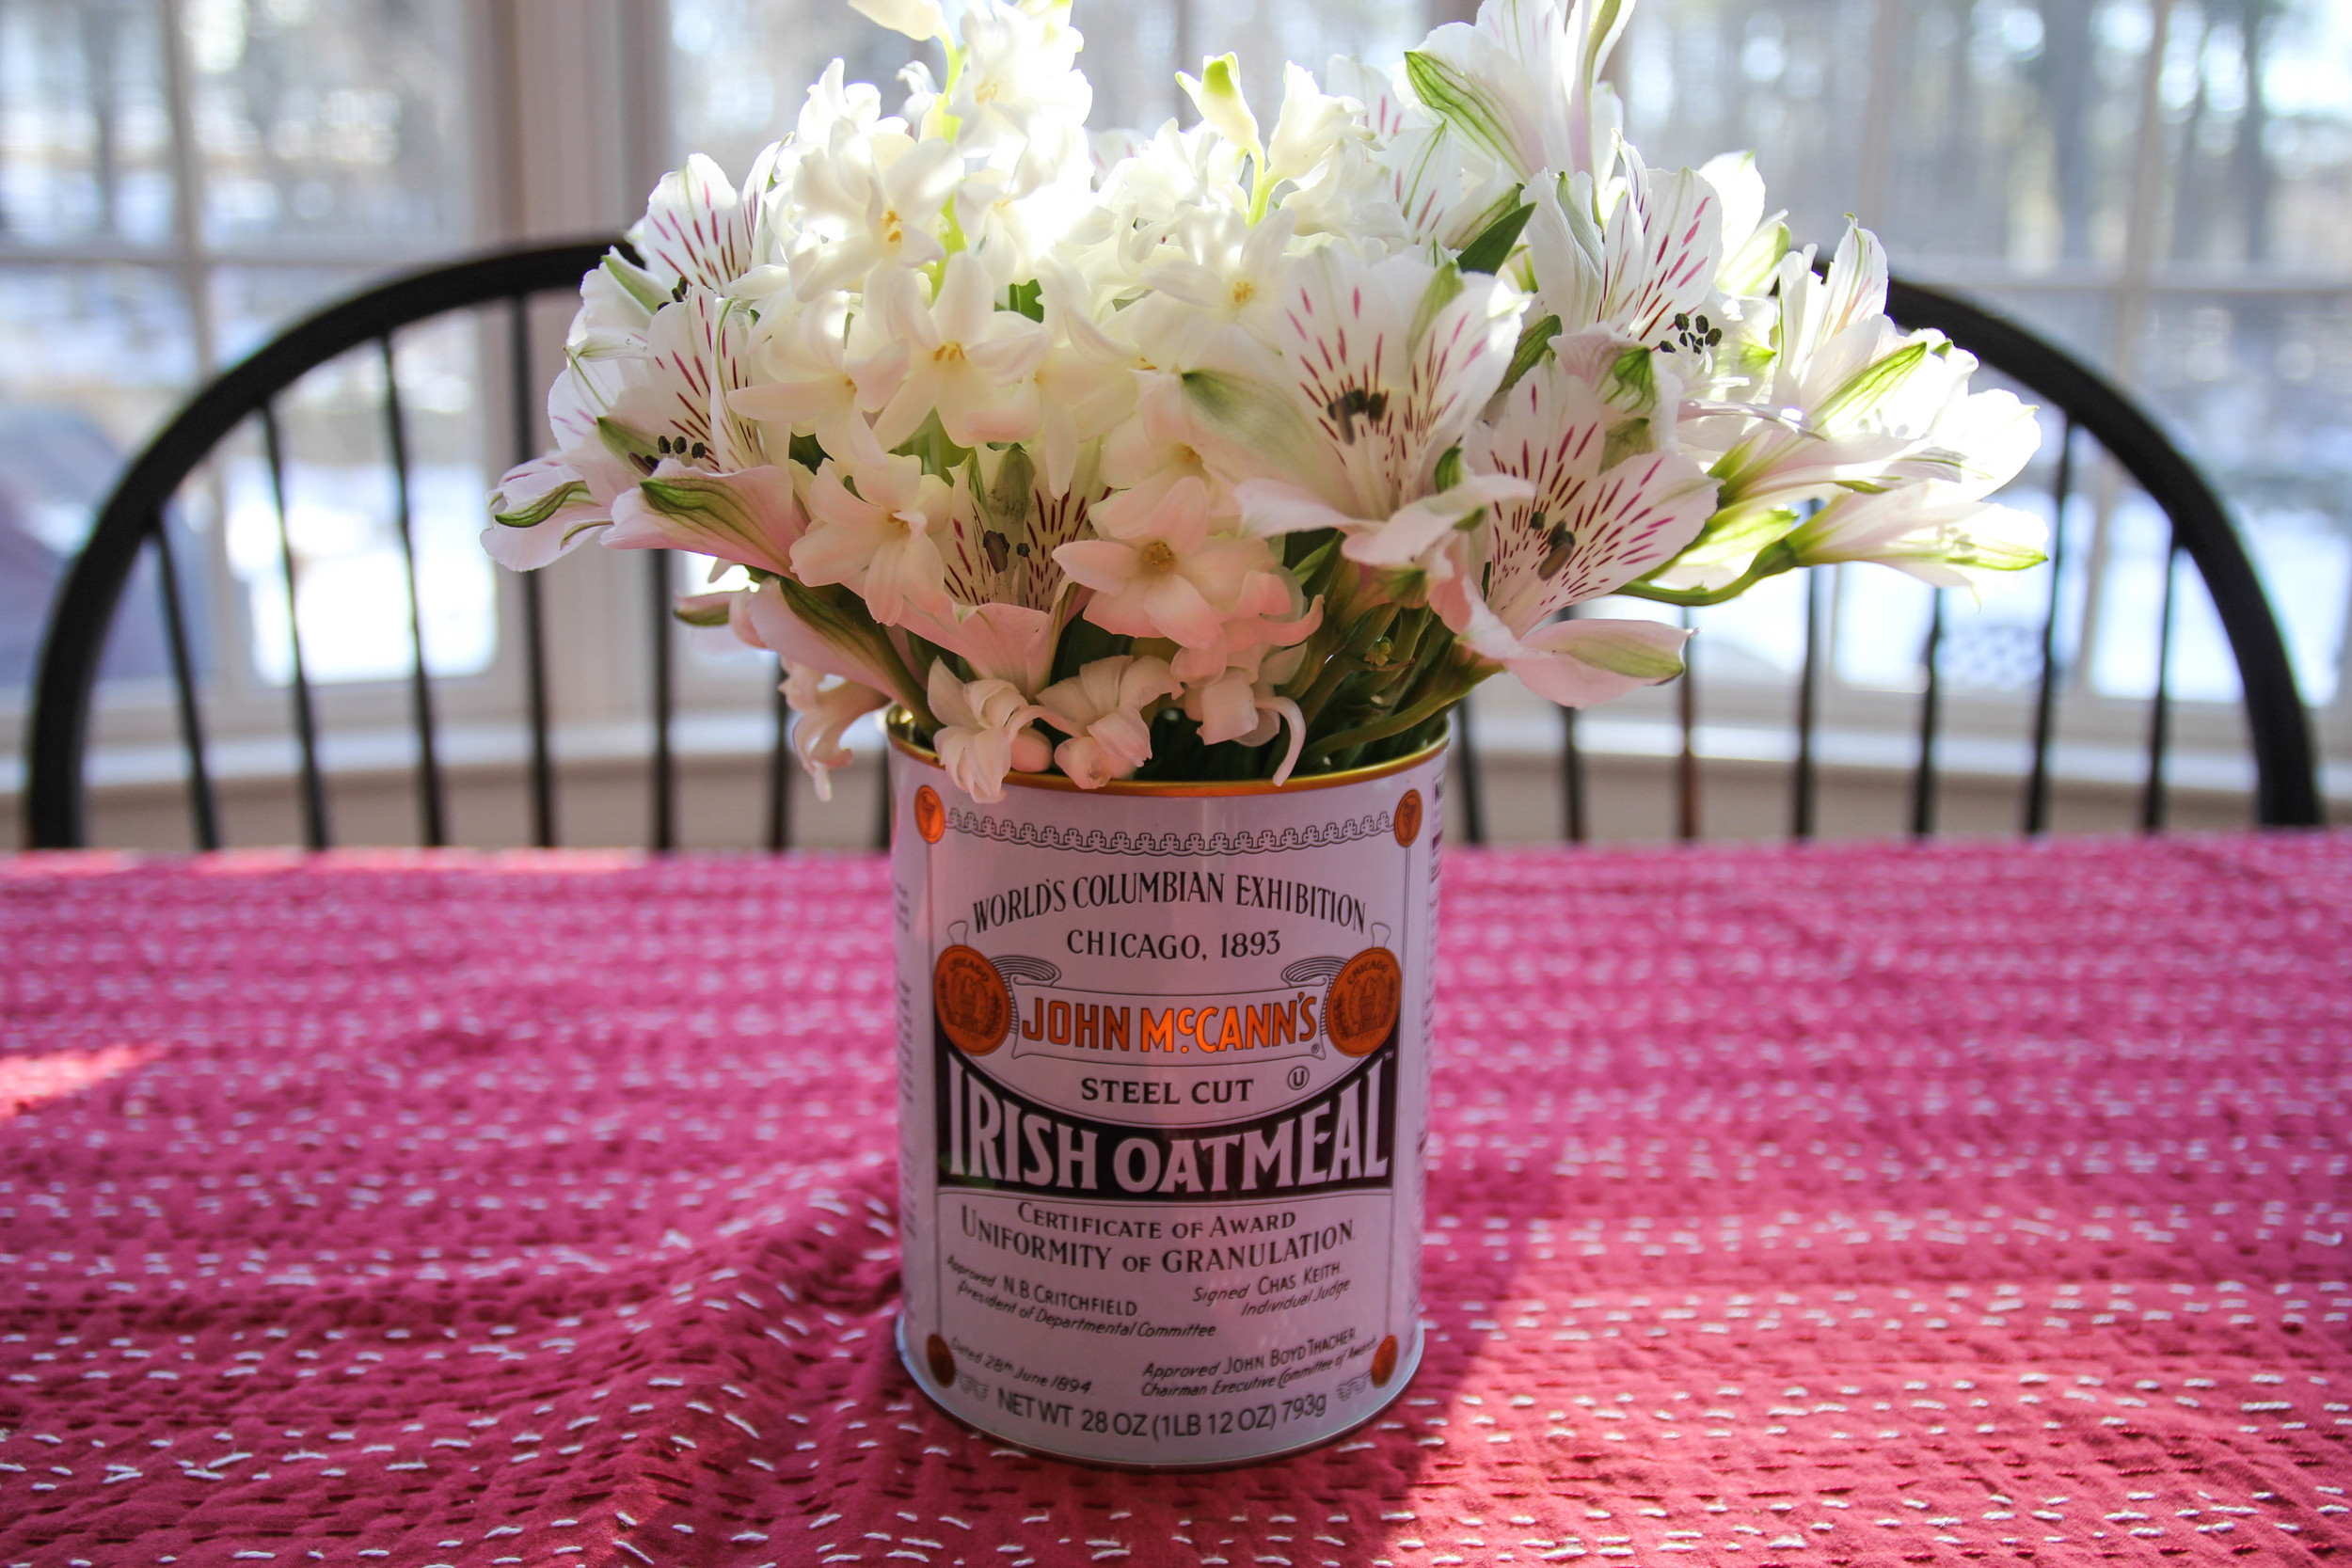 {Repurposing an oatmeal can for some fresh alstroemeria and hyacinth}